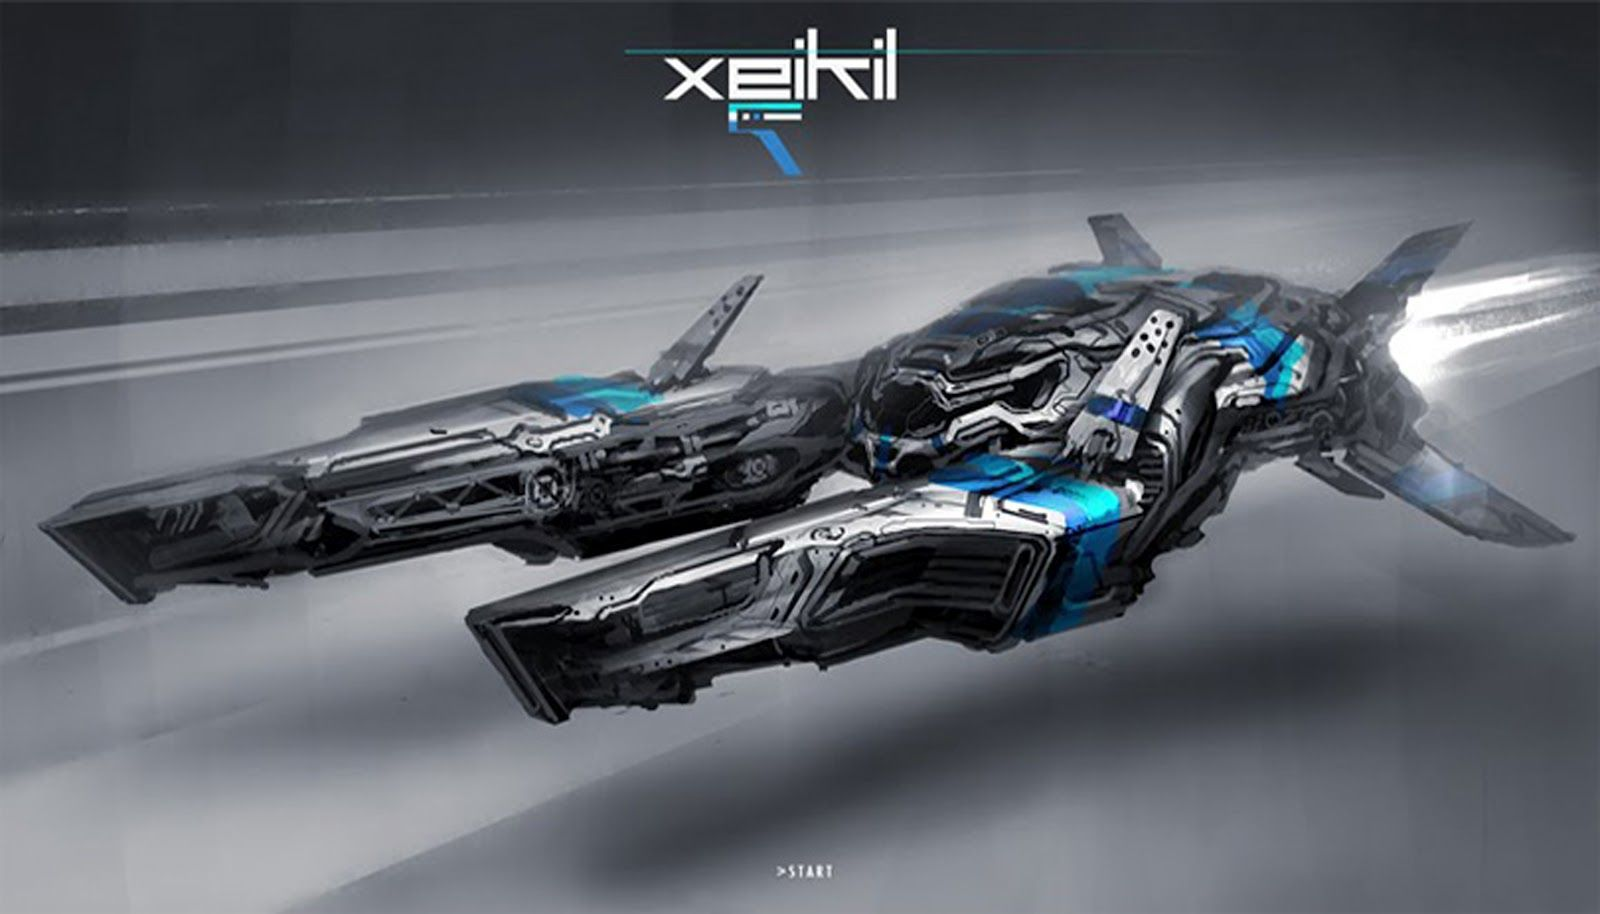 Black themed spaceship conceptual artwork and wallpapers 1 design - Futuristic Spaceship Asteroid Shore Concept Art Sci Fi Spacecoolvibe Digital Wallpapers Resolution Filesize Kb Added On January Tagged Futuristic